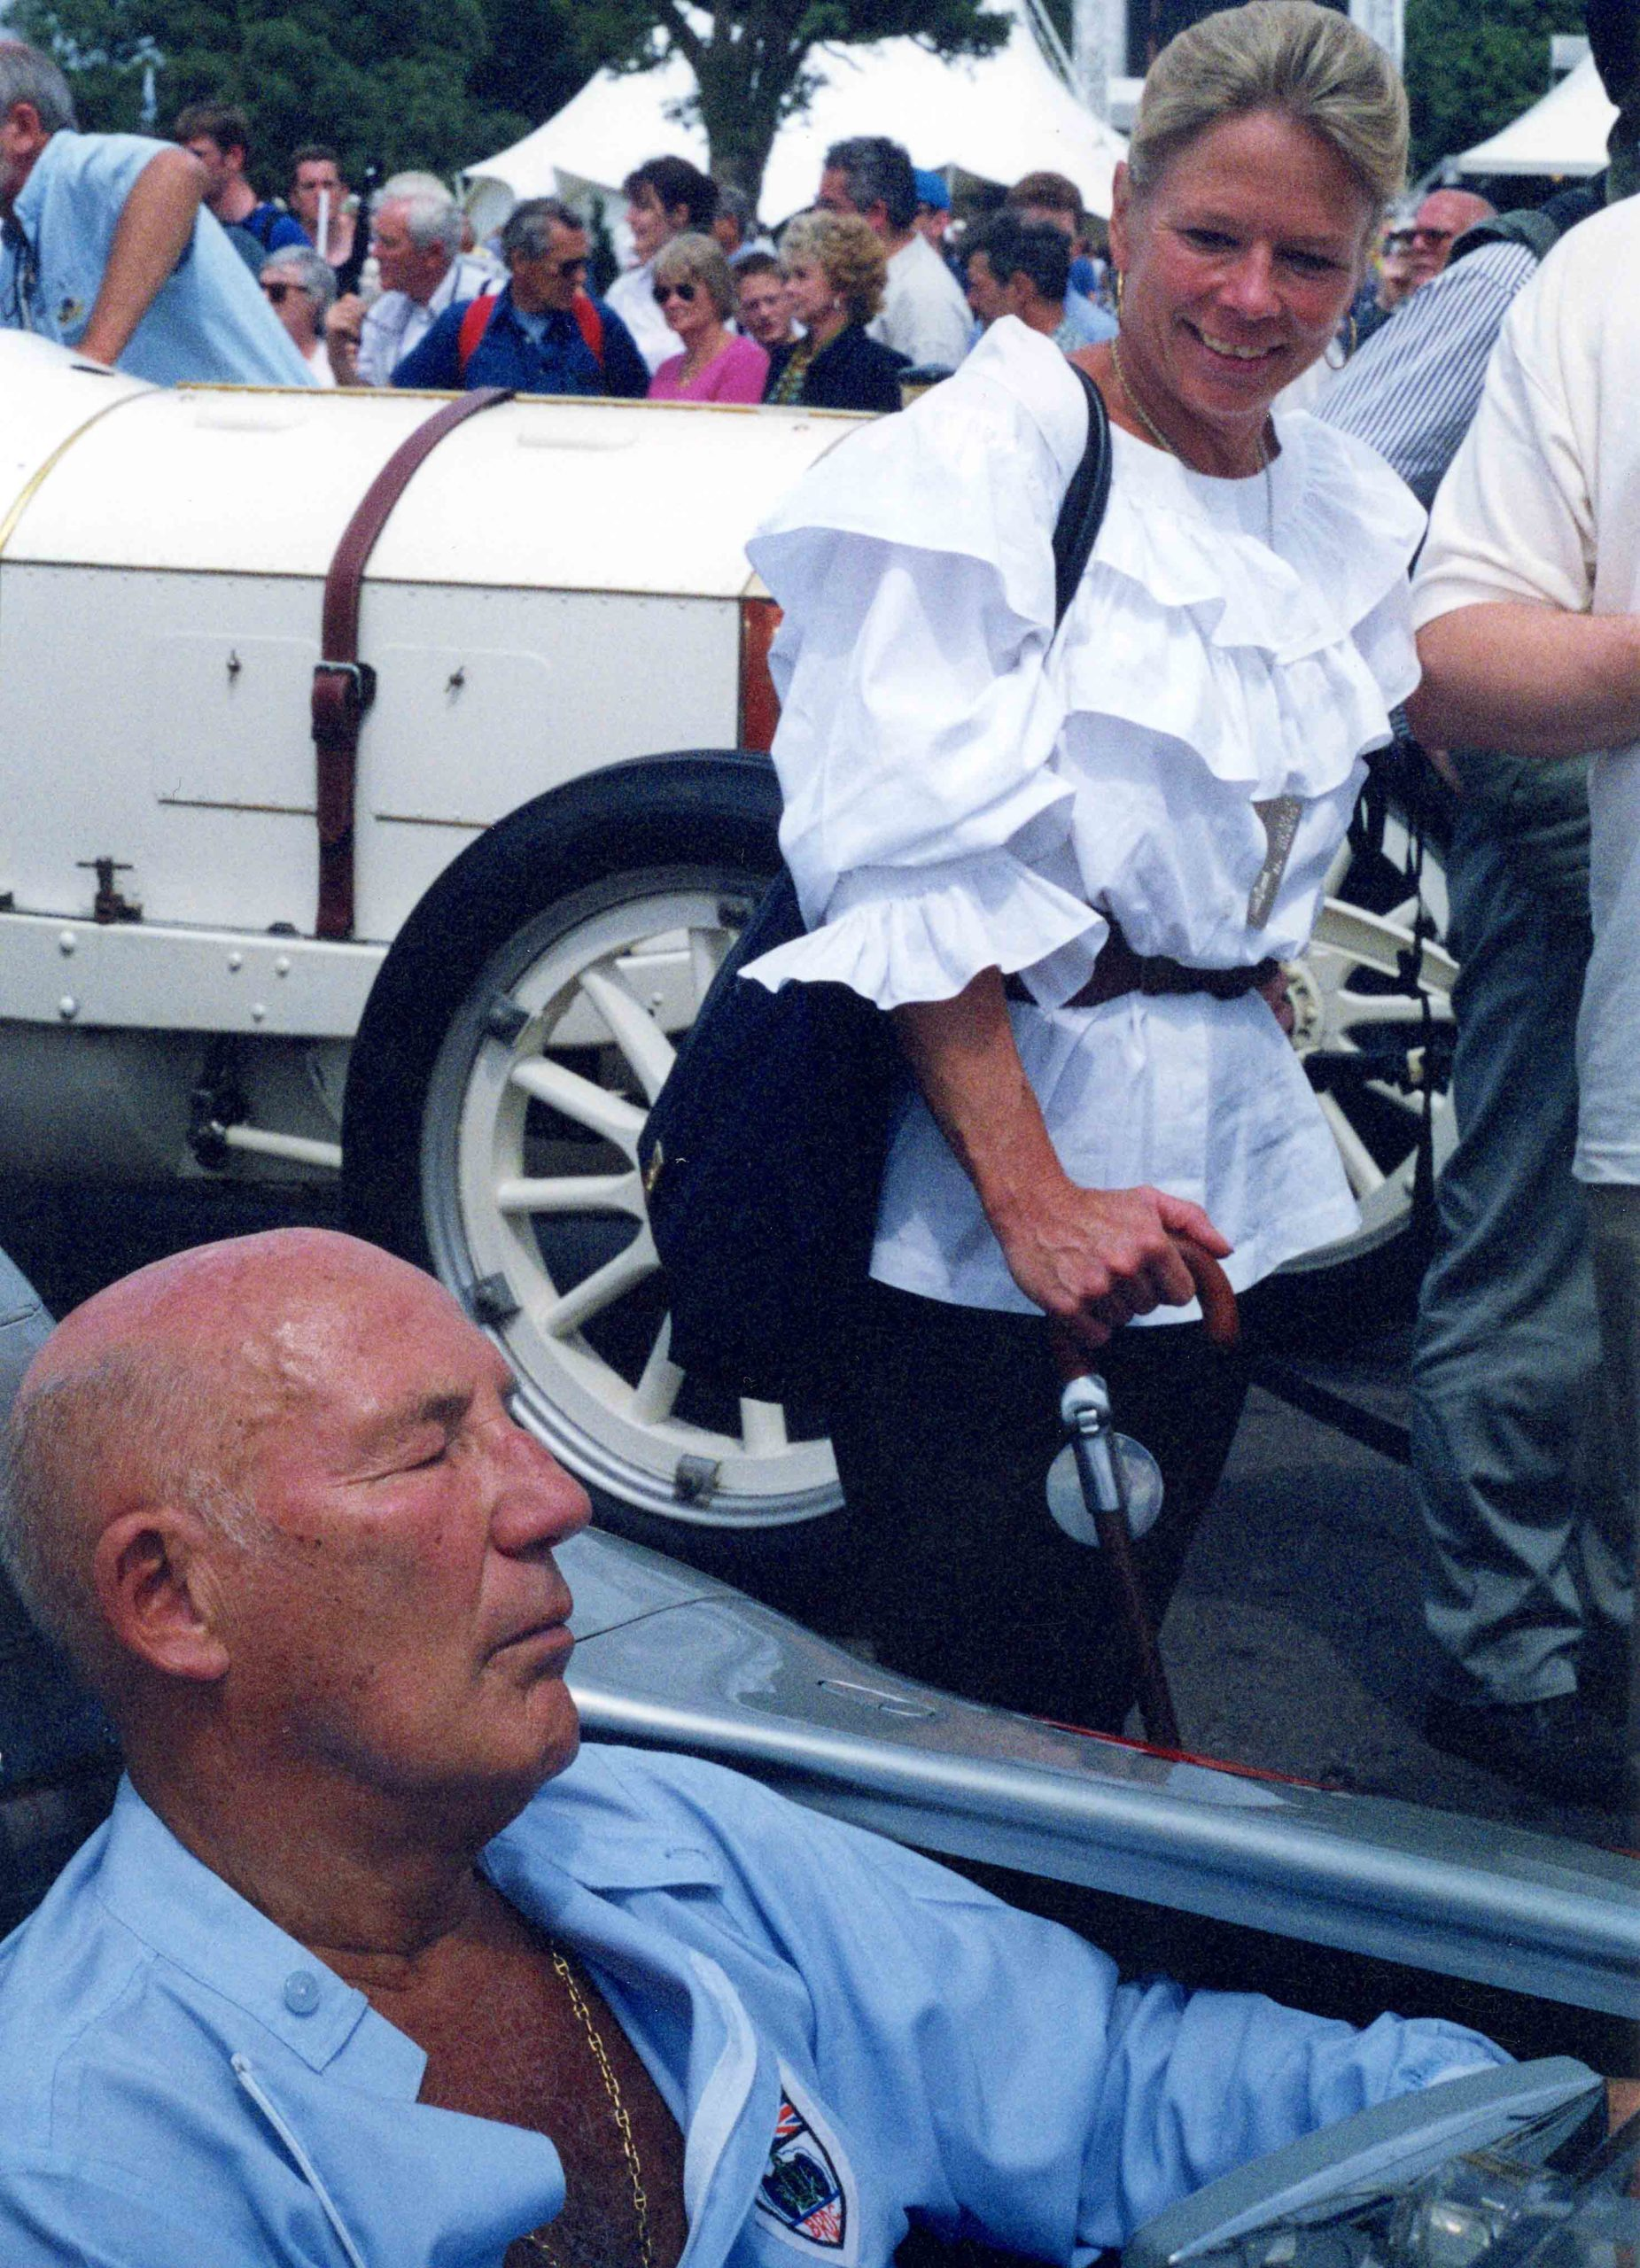 Stirling Moss napping in car at Goodwood Revival